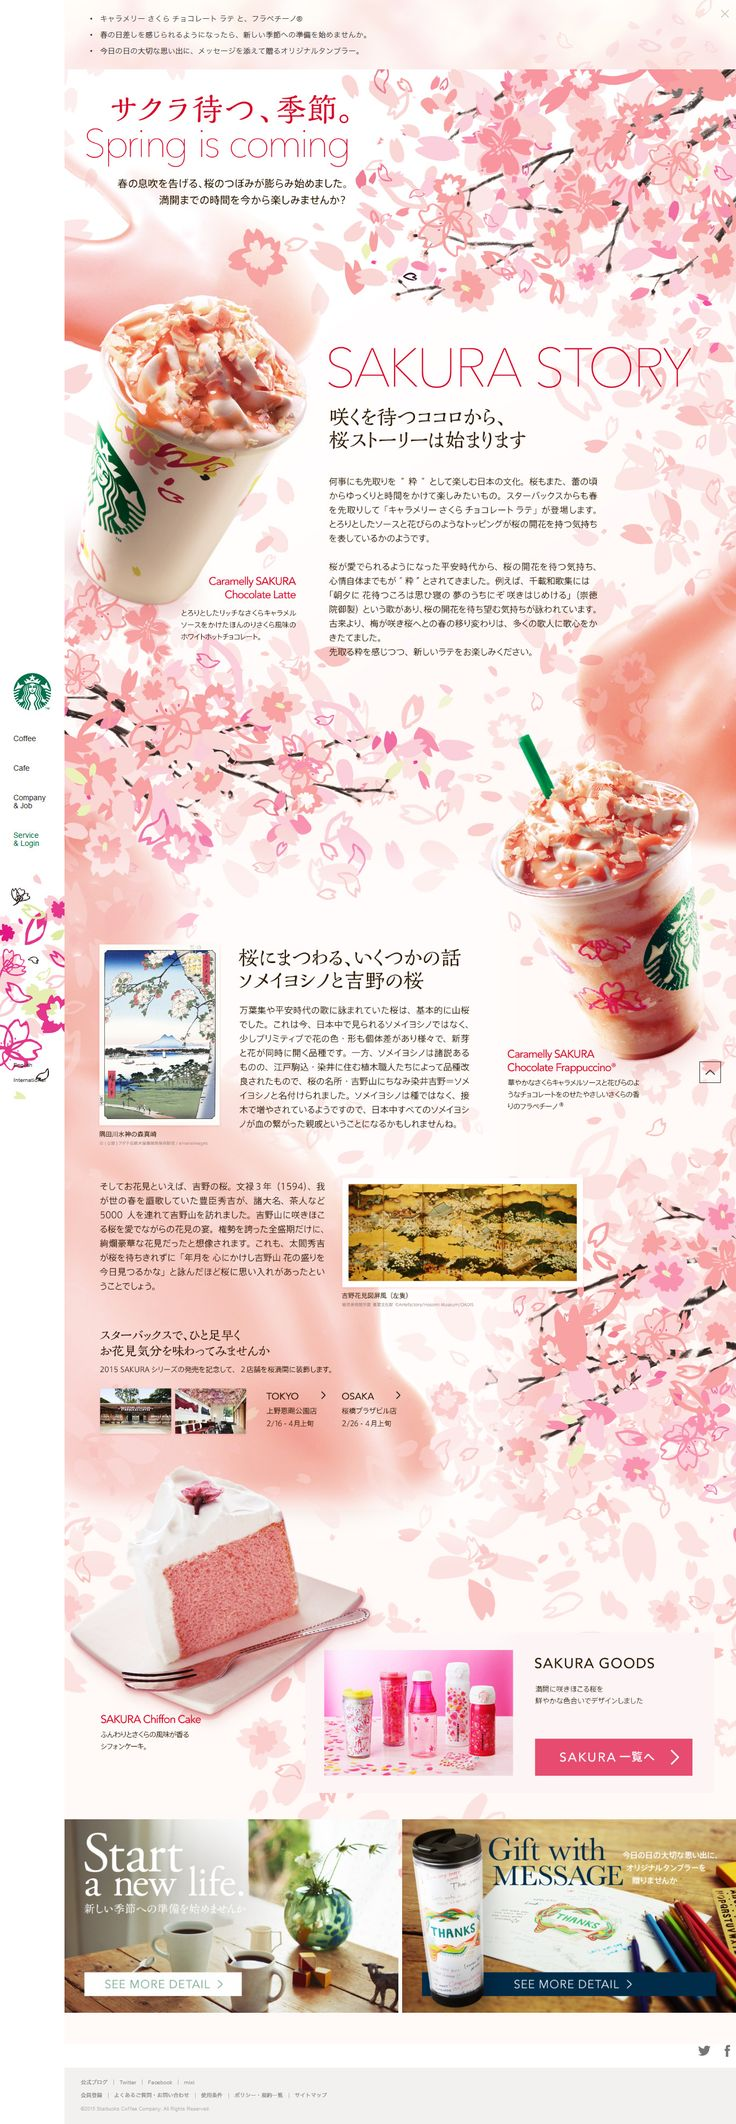 http://www.starbucks.co.jp/cafe/?nid=wh_01_pc スタバに春がやって来た